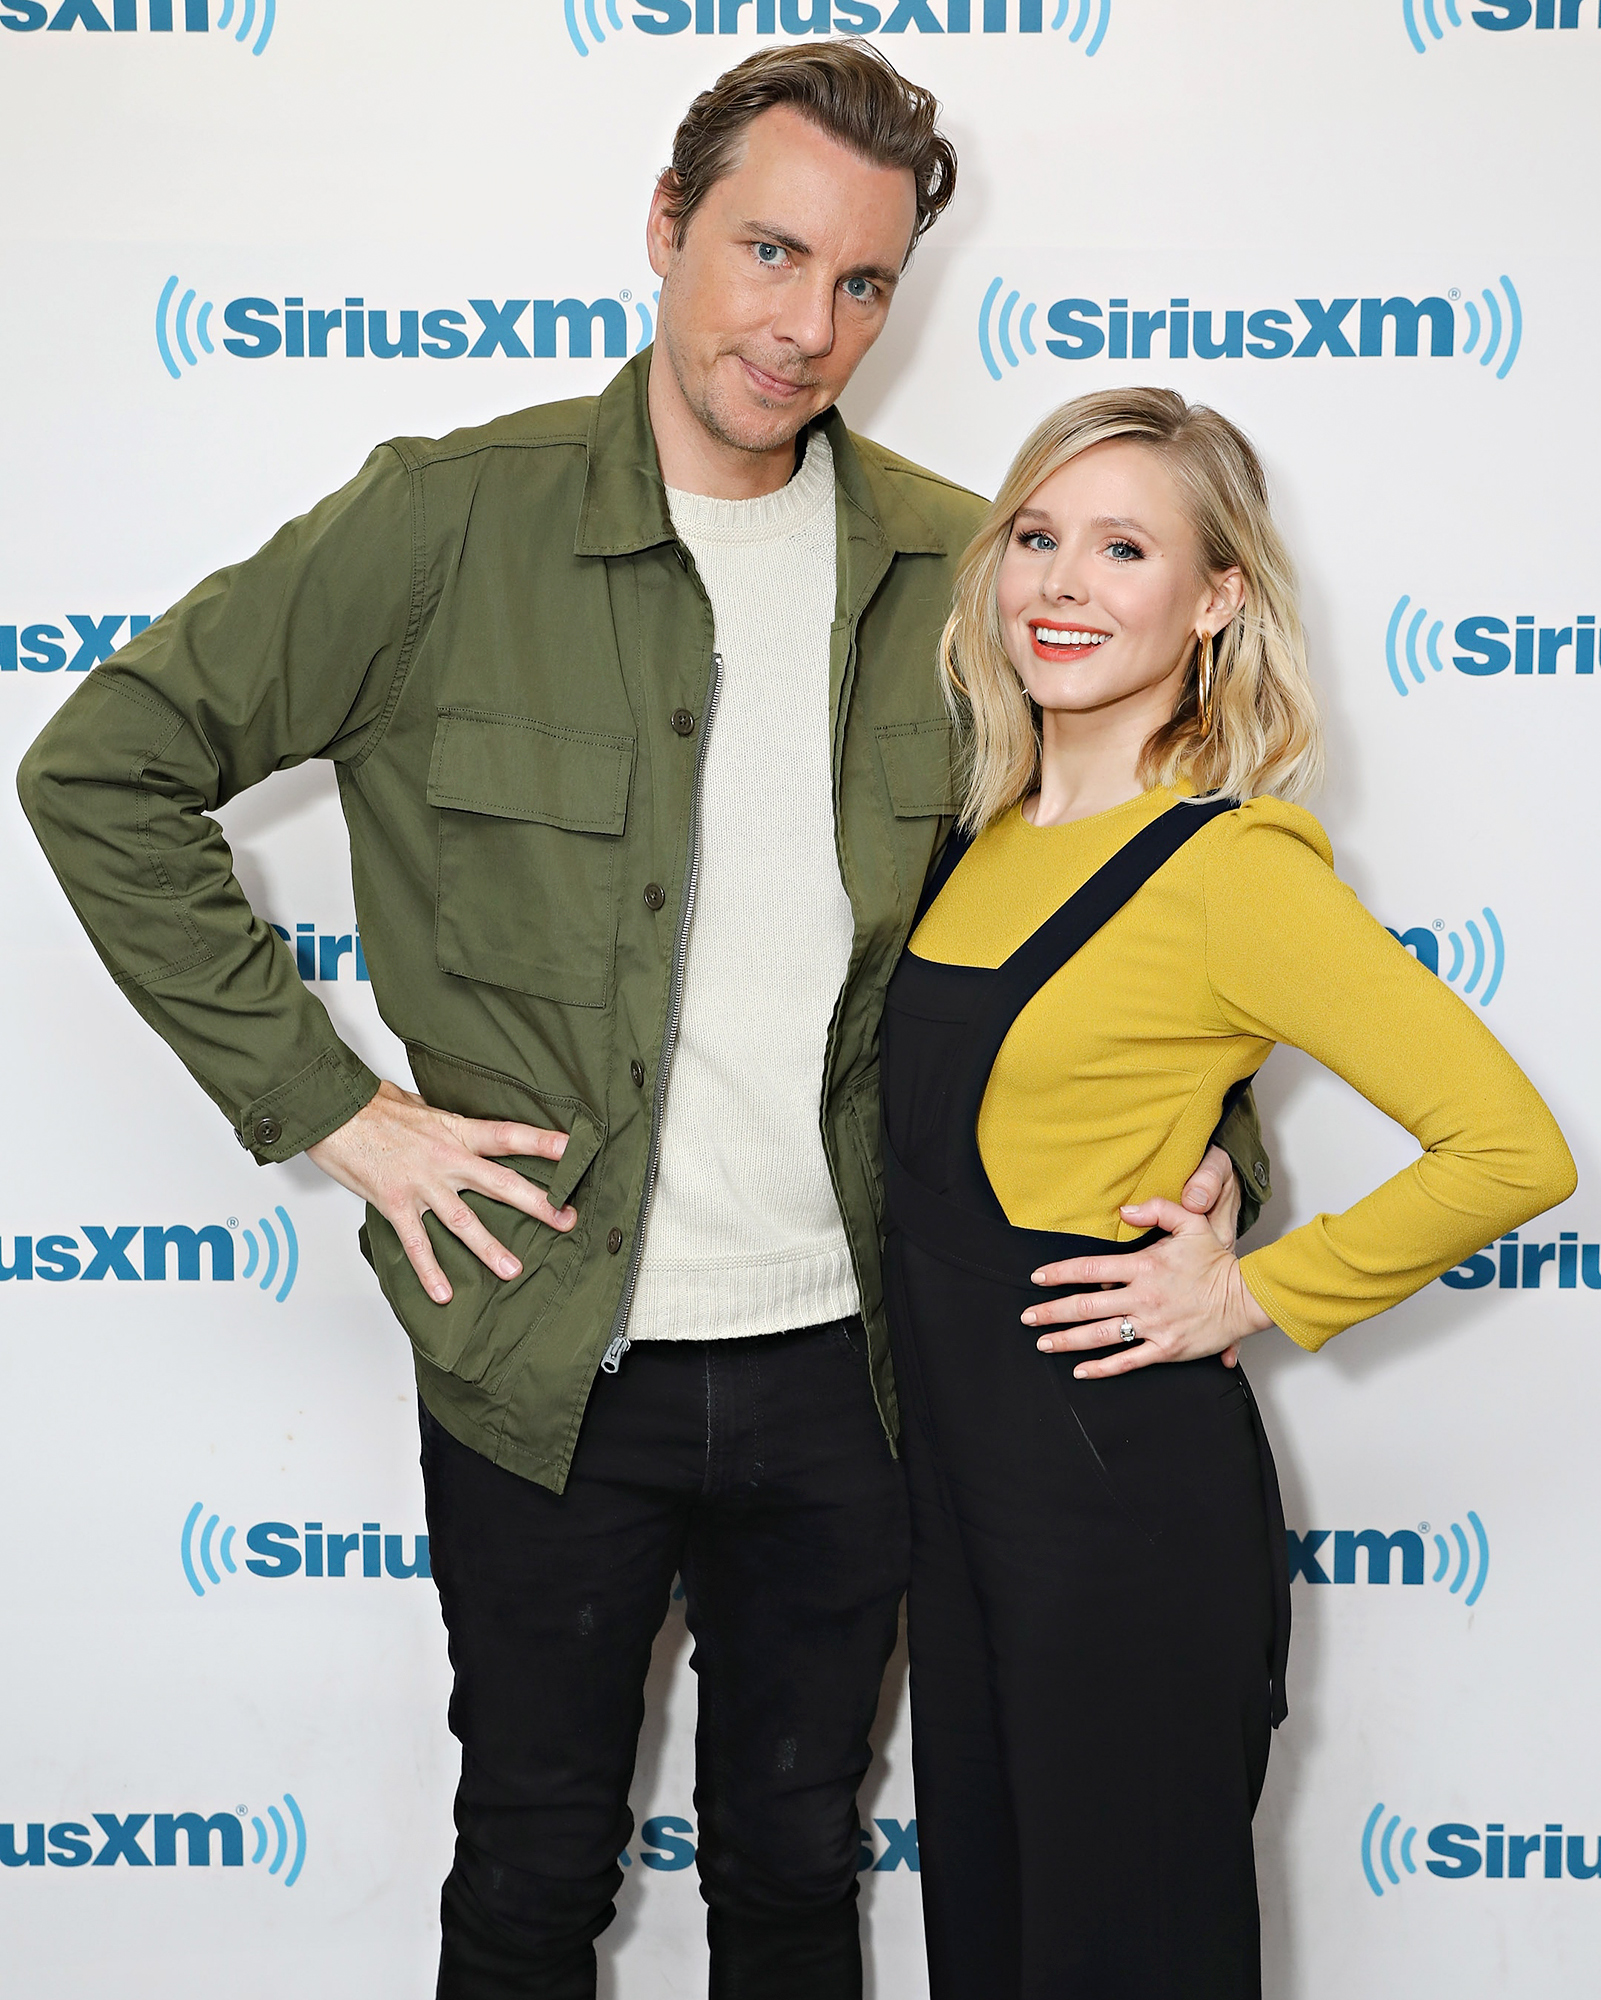 Celebrities Visit SiriusXM - March 22, 2017